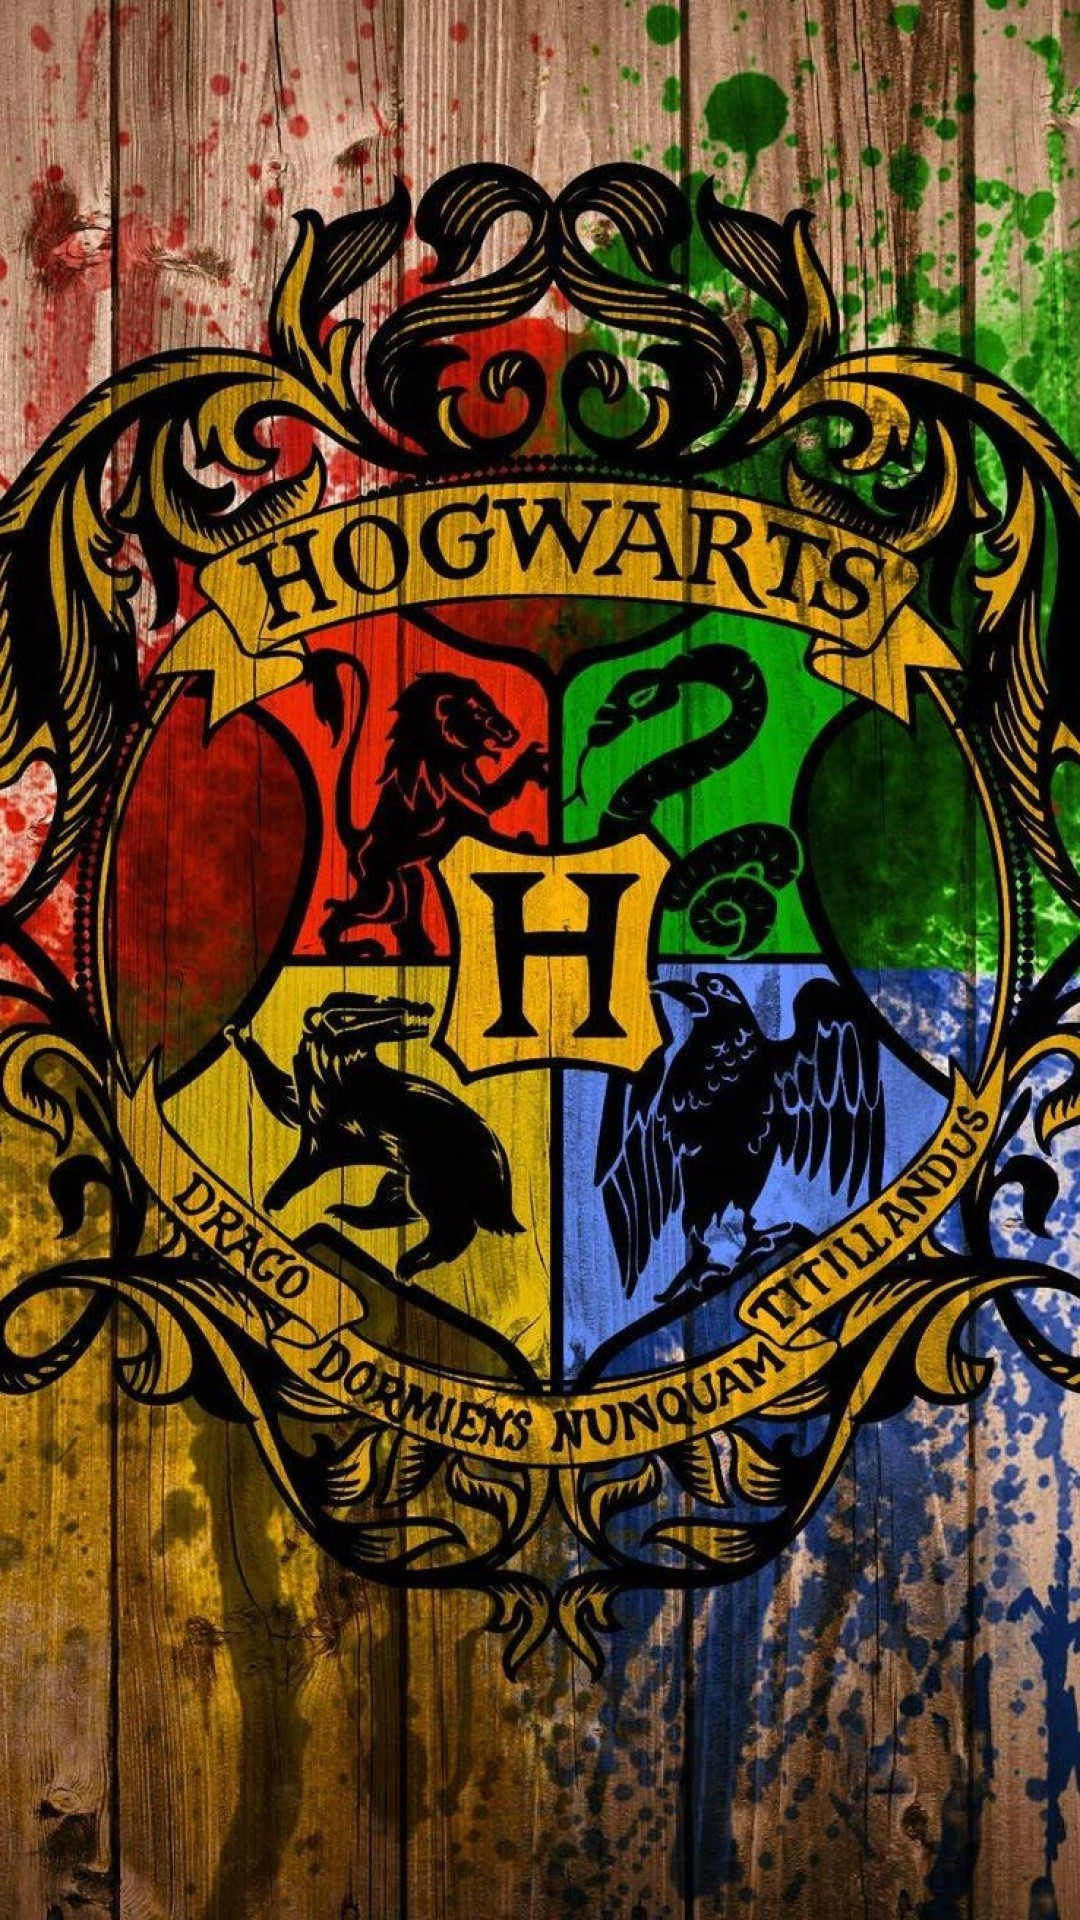 Res: 1080x1920, Gallery For Ravenclaw Iphone Wallpaper 900x506. View 0. s4 32222 harry  potter 1805b6a80f49d153e3fca2f83054fb9c rawjpg